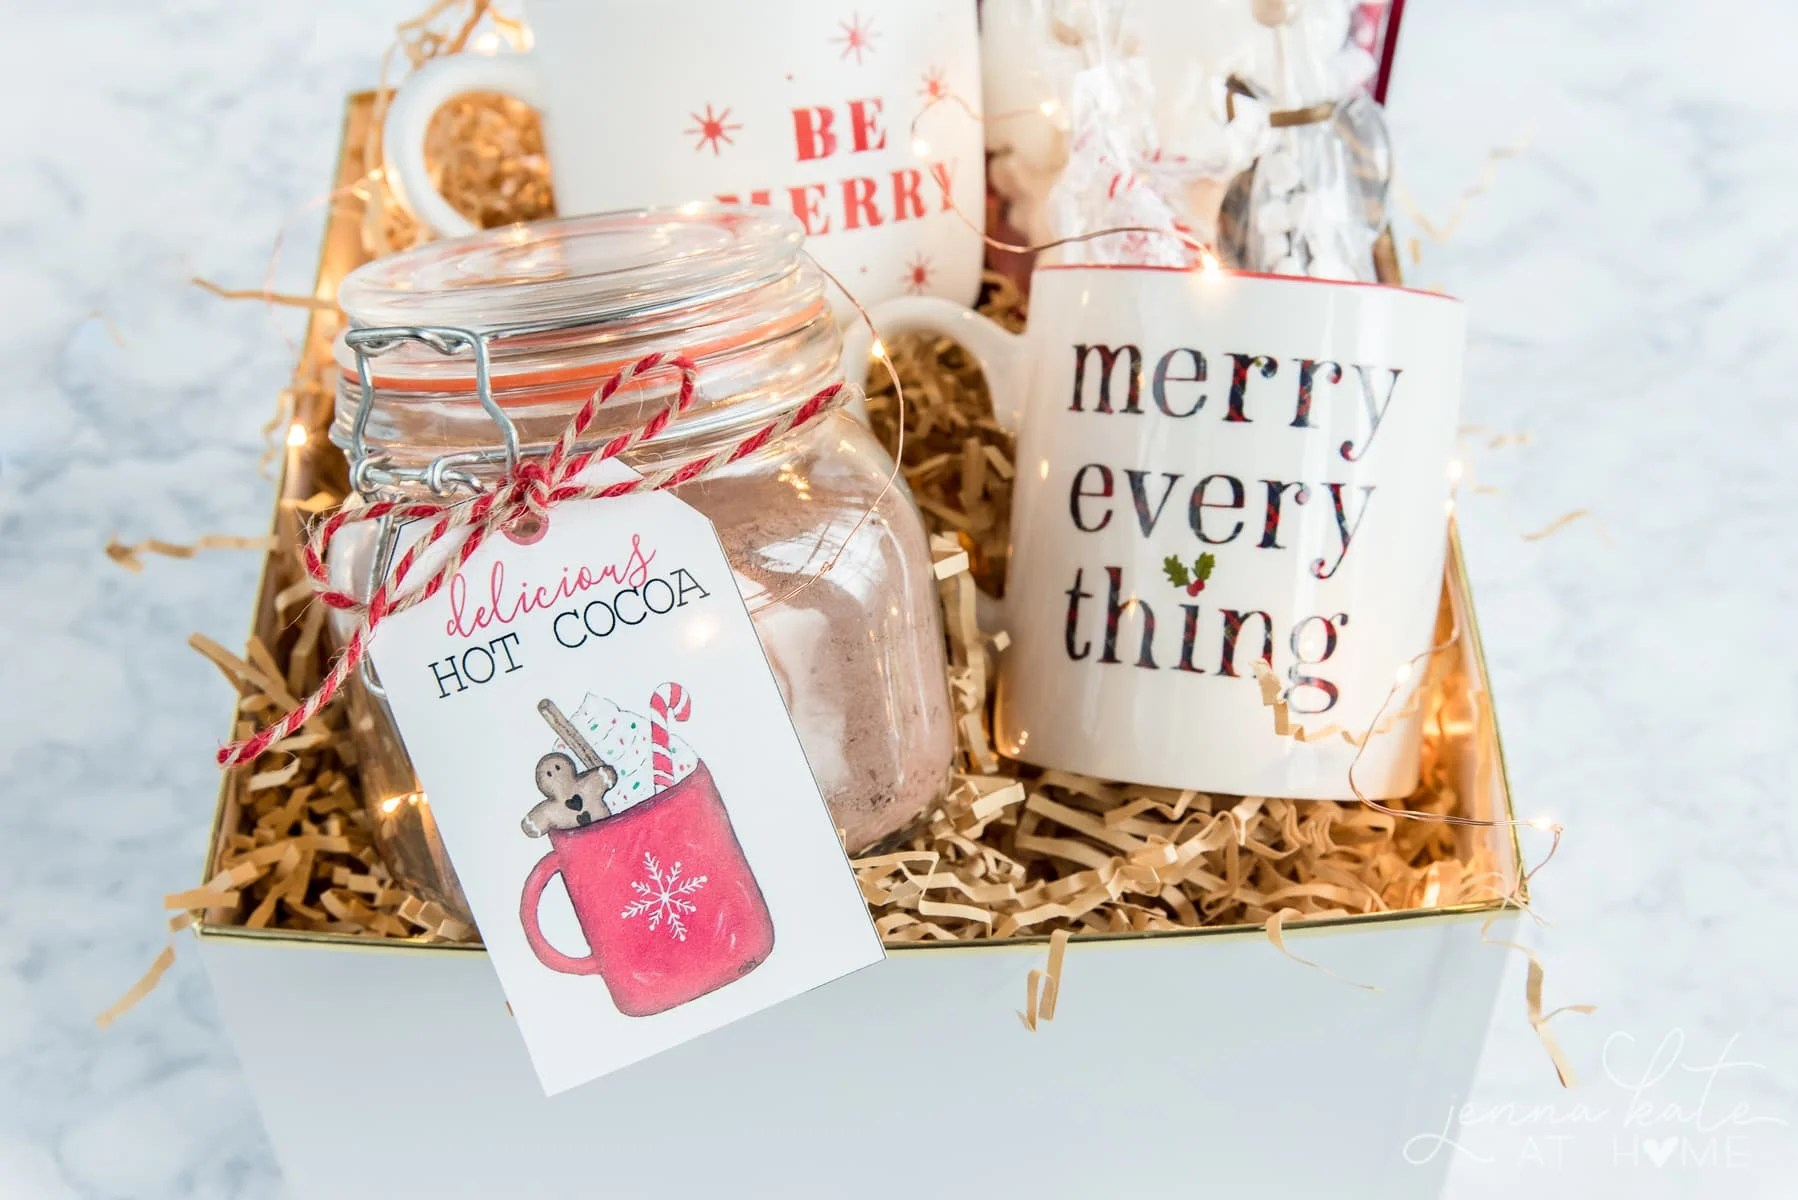 Hot chocolate gift basket idea with homemade mix, Christmas mugs, stir sticks and marshmallows